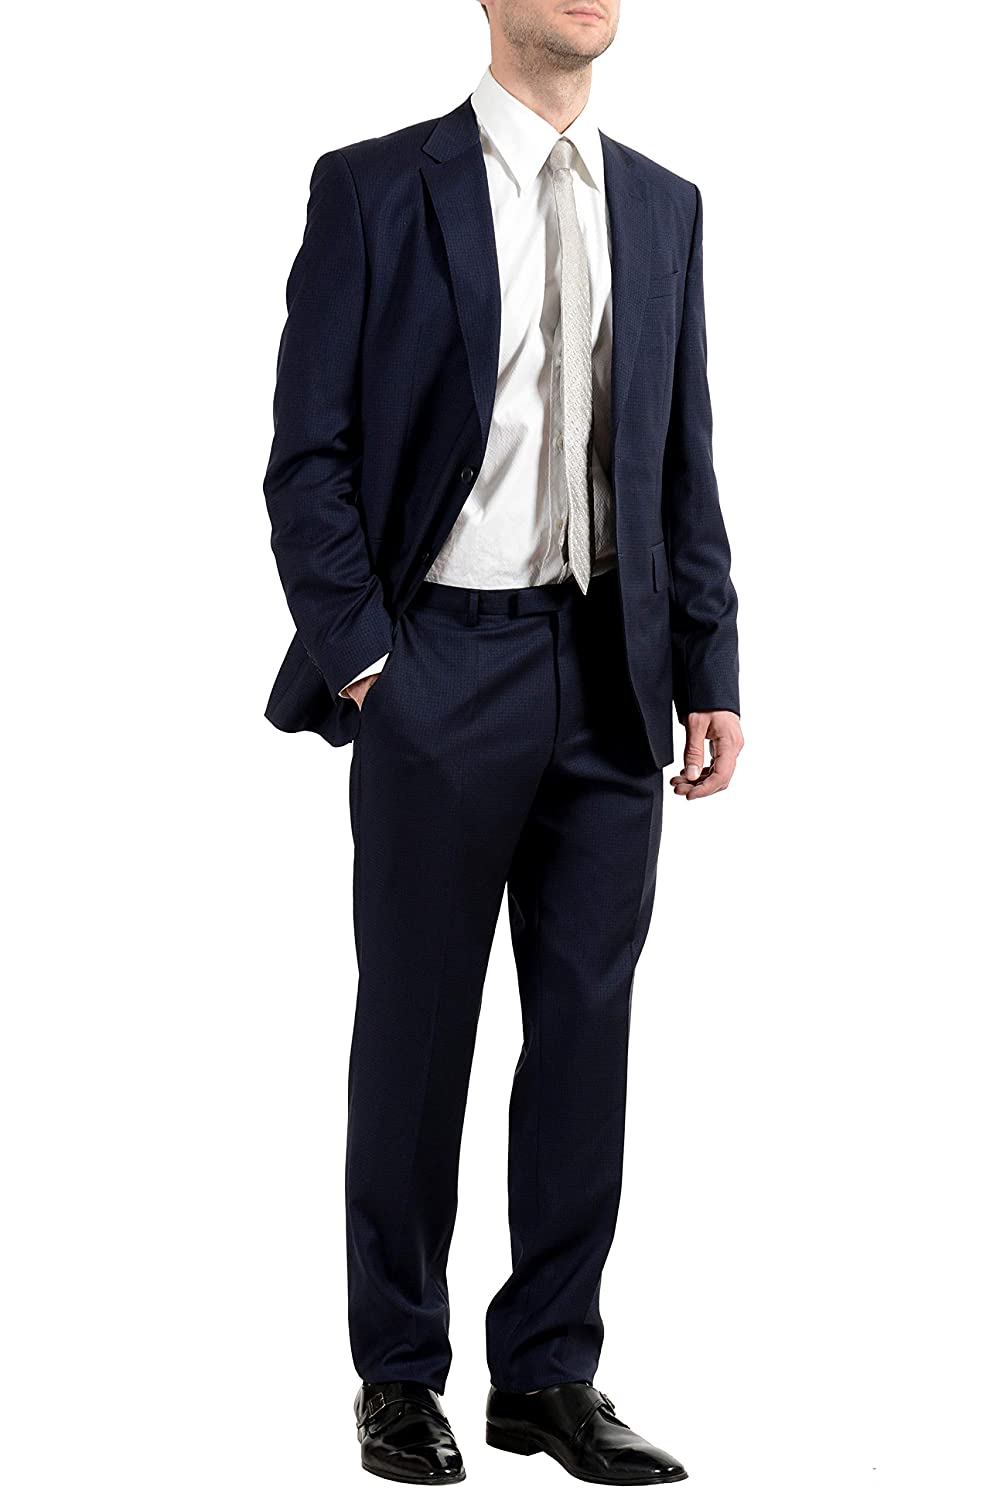 Hugo Boss Jewels1//Linus Mens 100/% Wool Blue Two Button Suit US 40R IT 50R